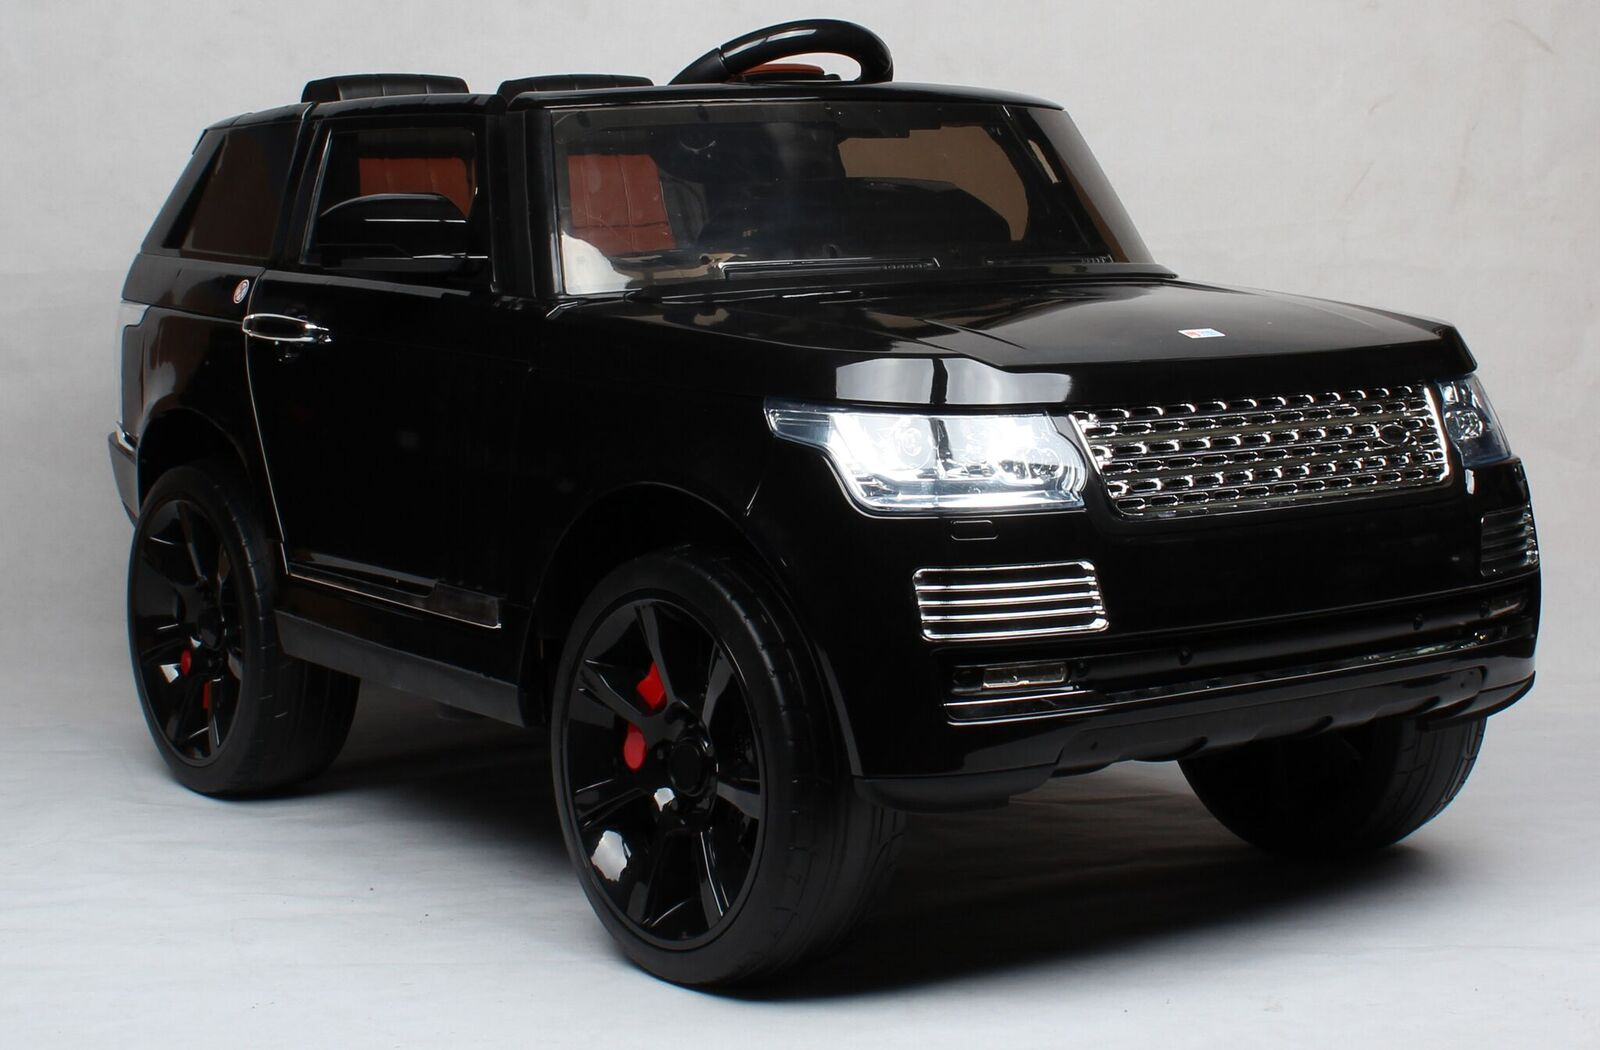 Электромобиль Range Rover Vogue черный